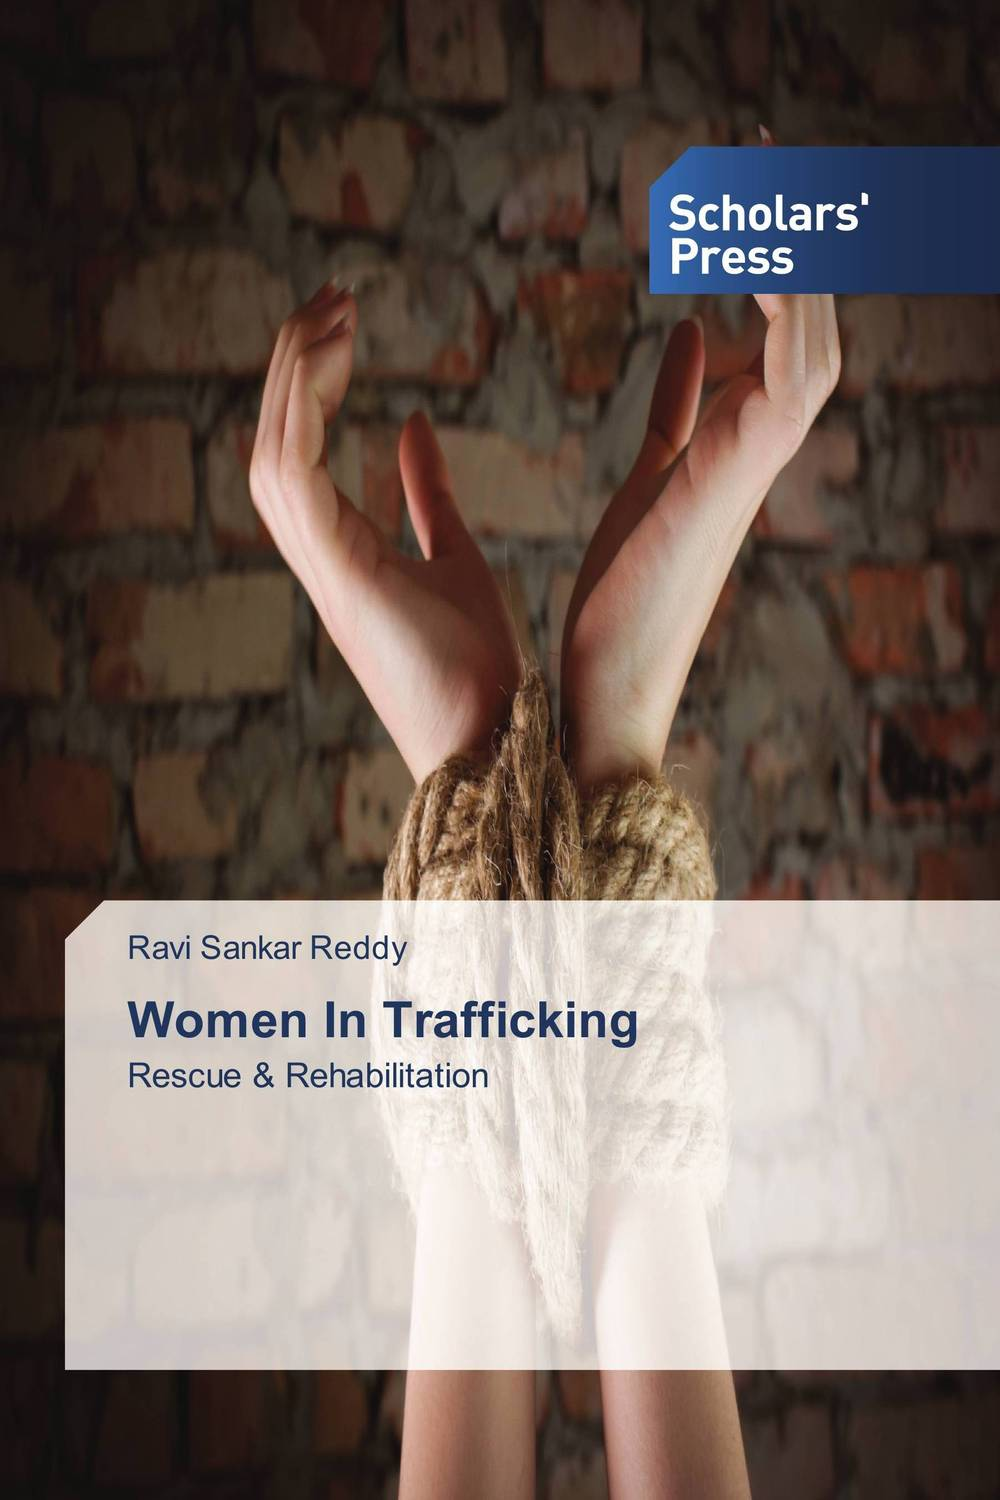 Women In Trafficking victims stories and the advancement of human rights